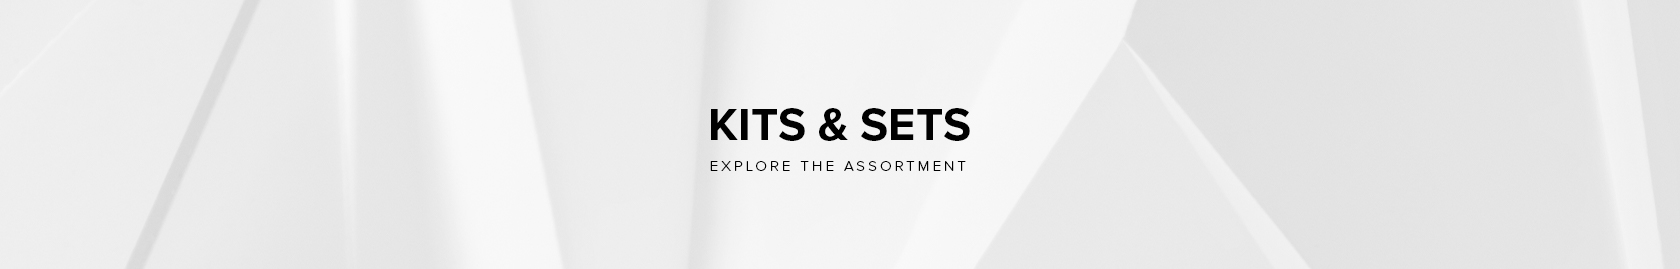 Kits and Sets - Explore the Assortment